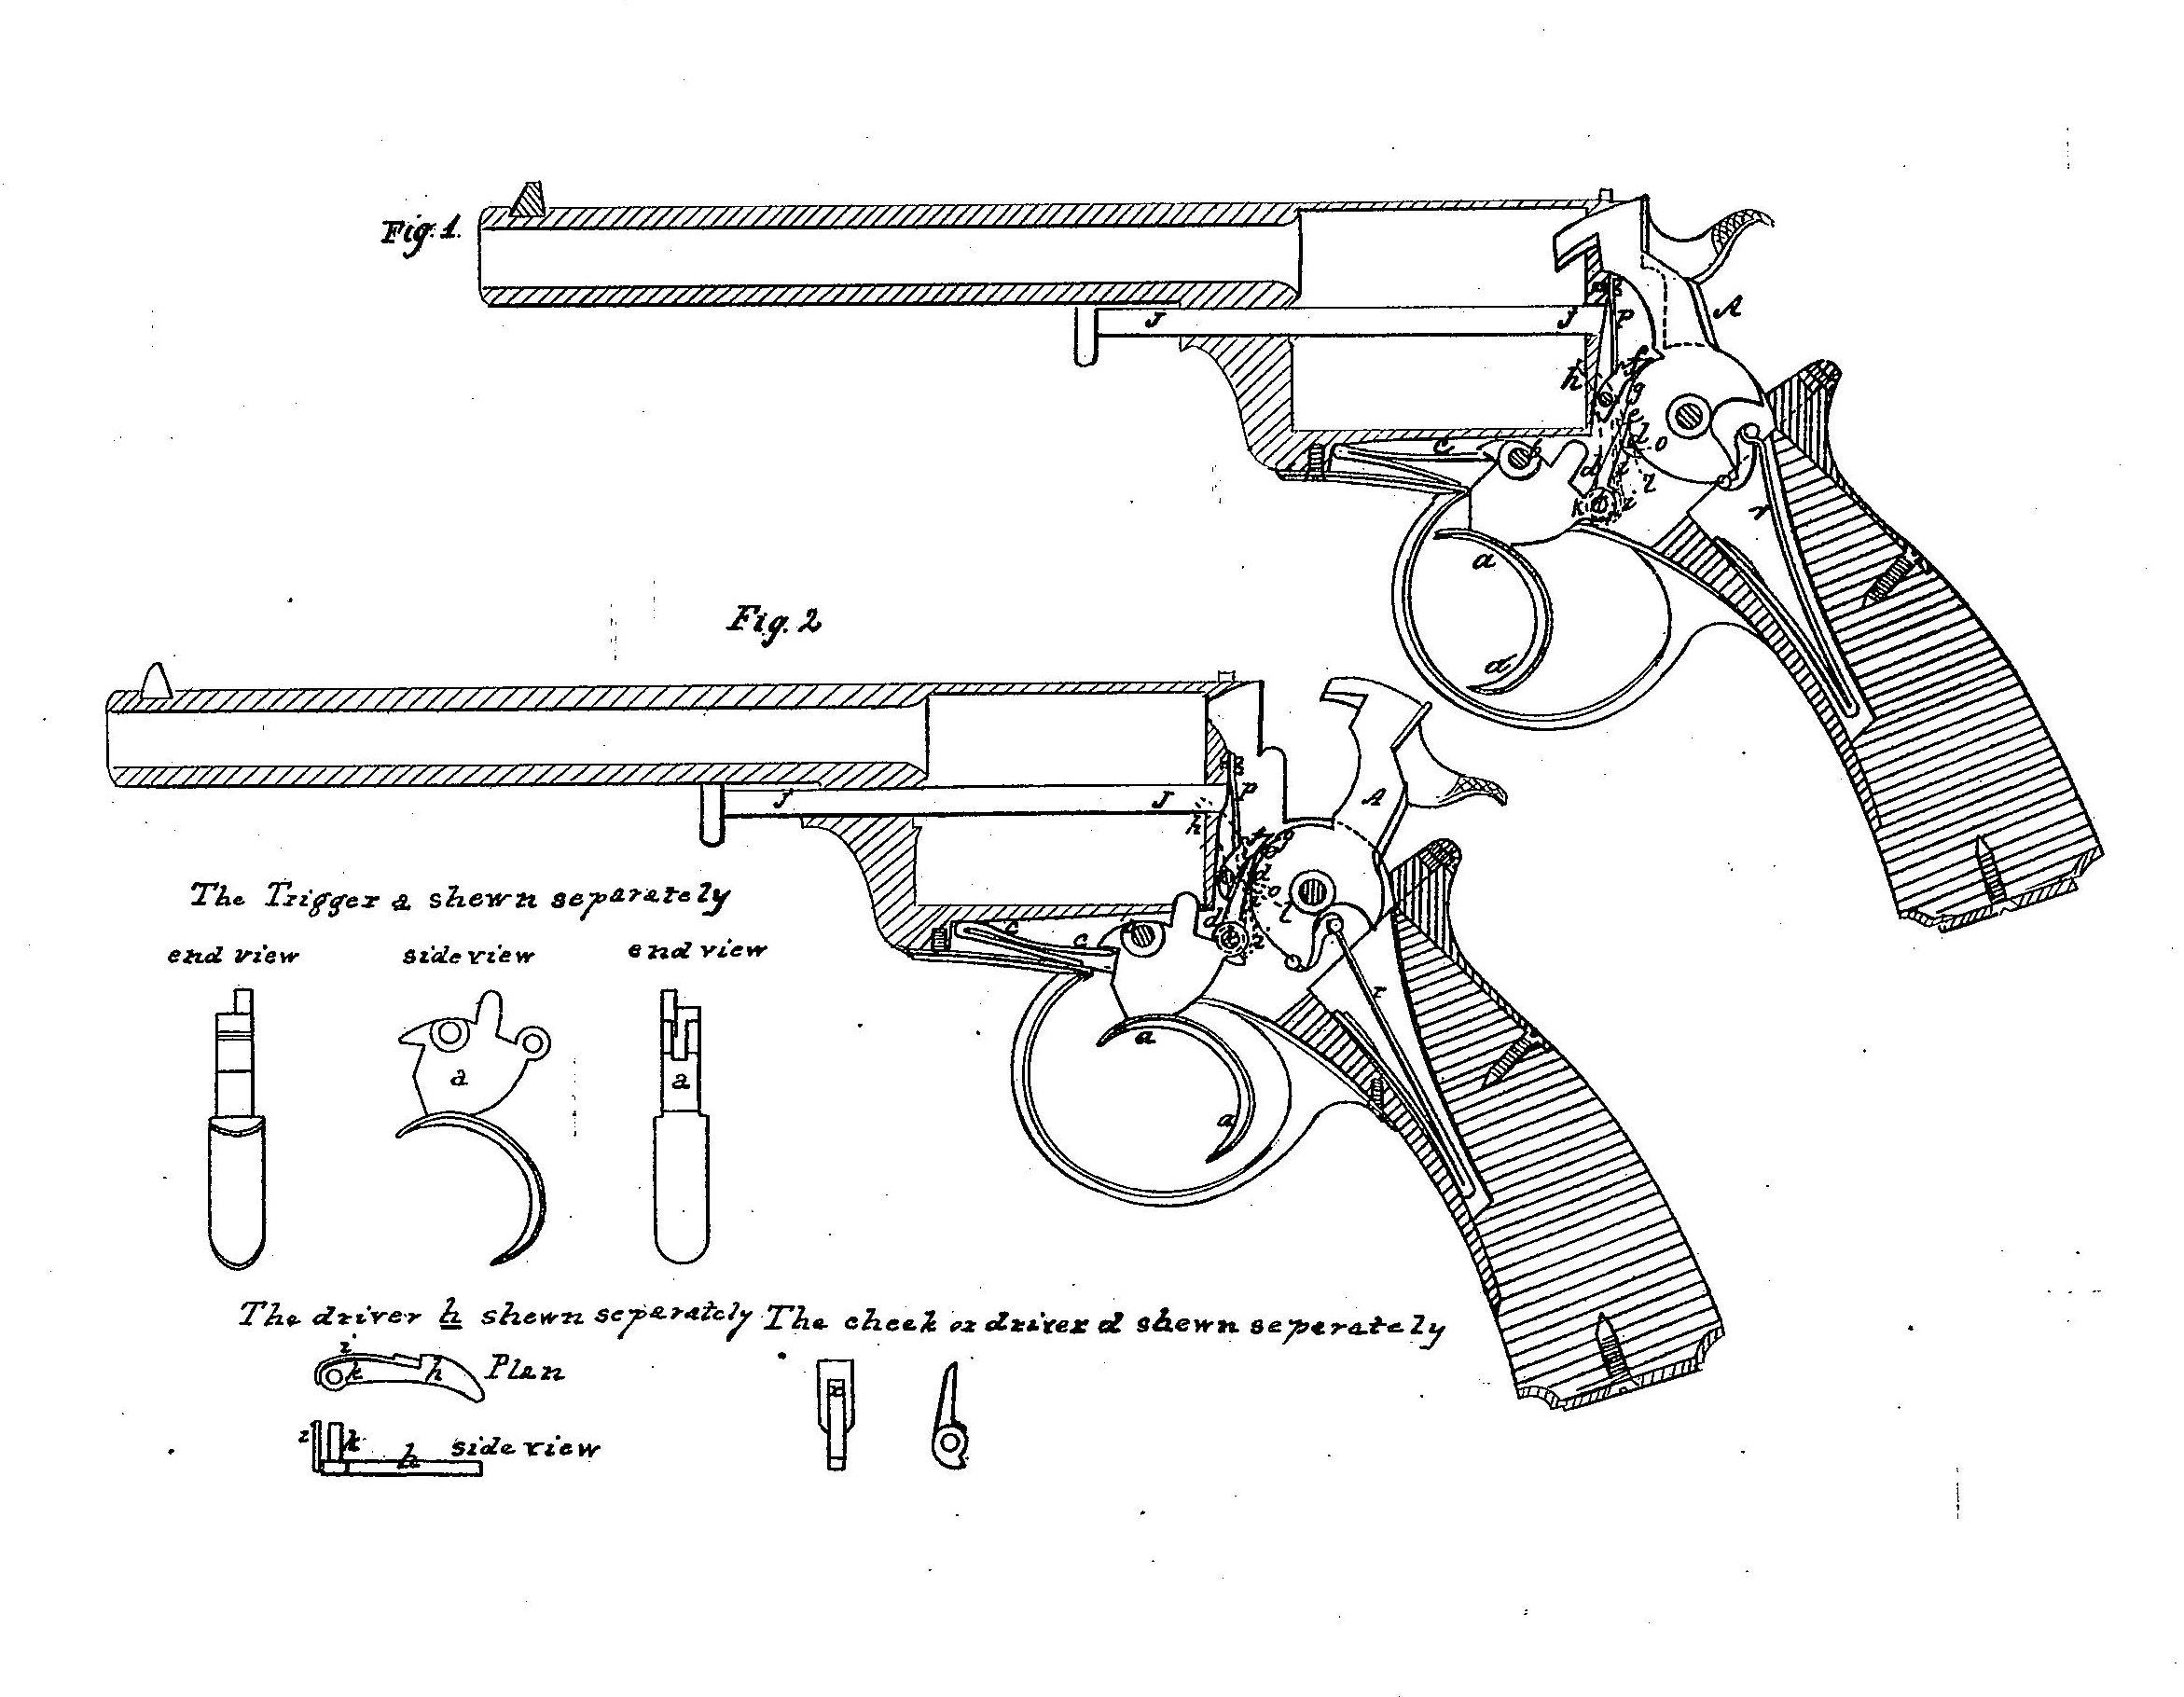 Patent drawings of the Beaumont double action mechanism for revolvers. (Picture courtesy Wikipedia).